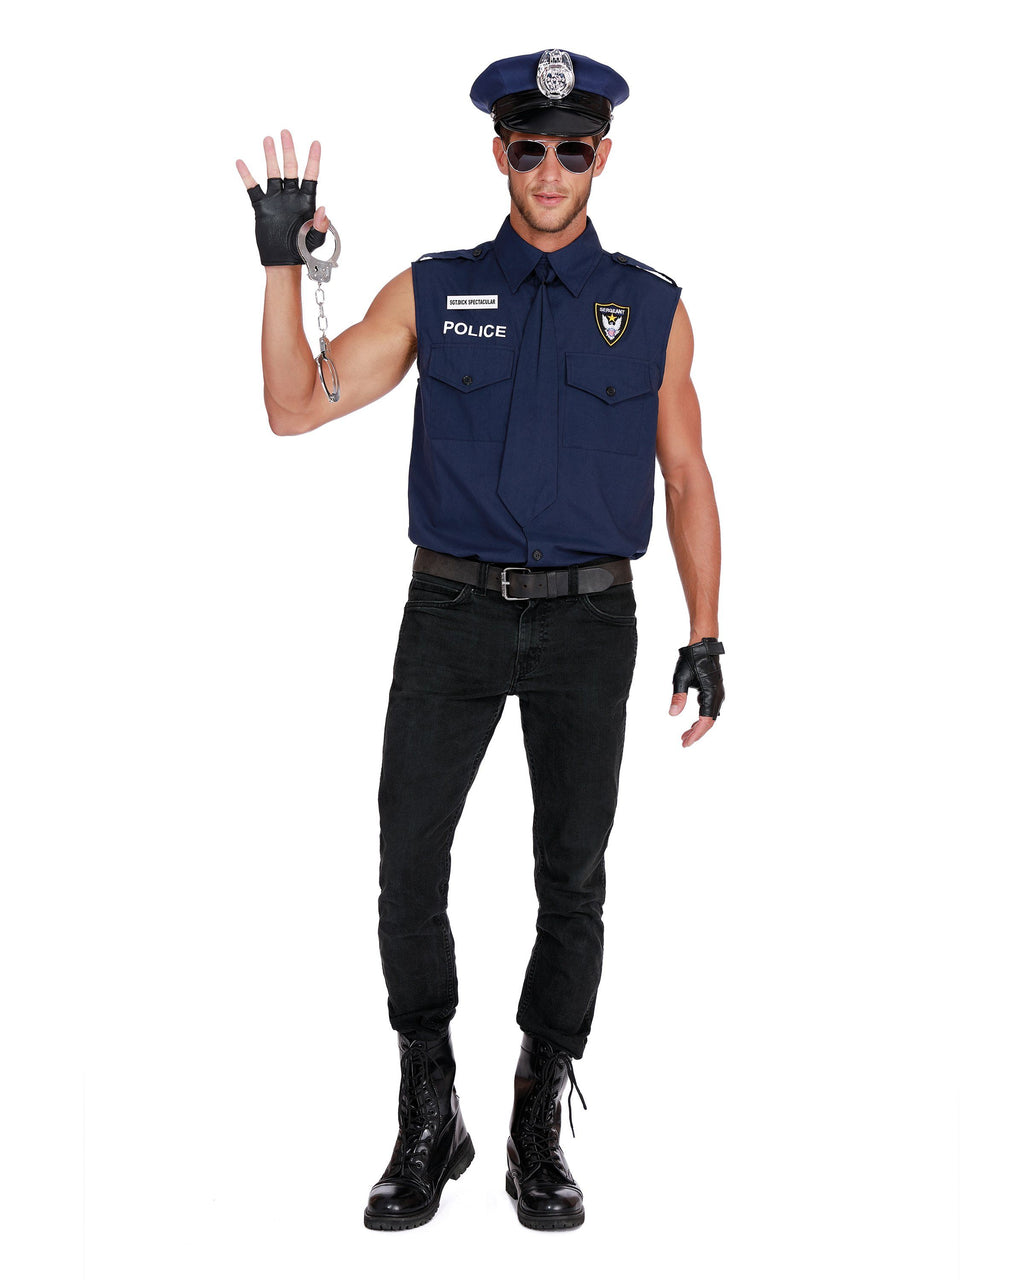 The Sergeant Men's Costume Dreamgirl Costume